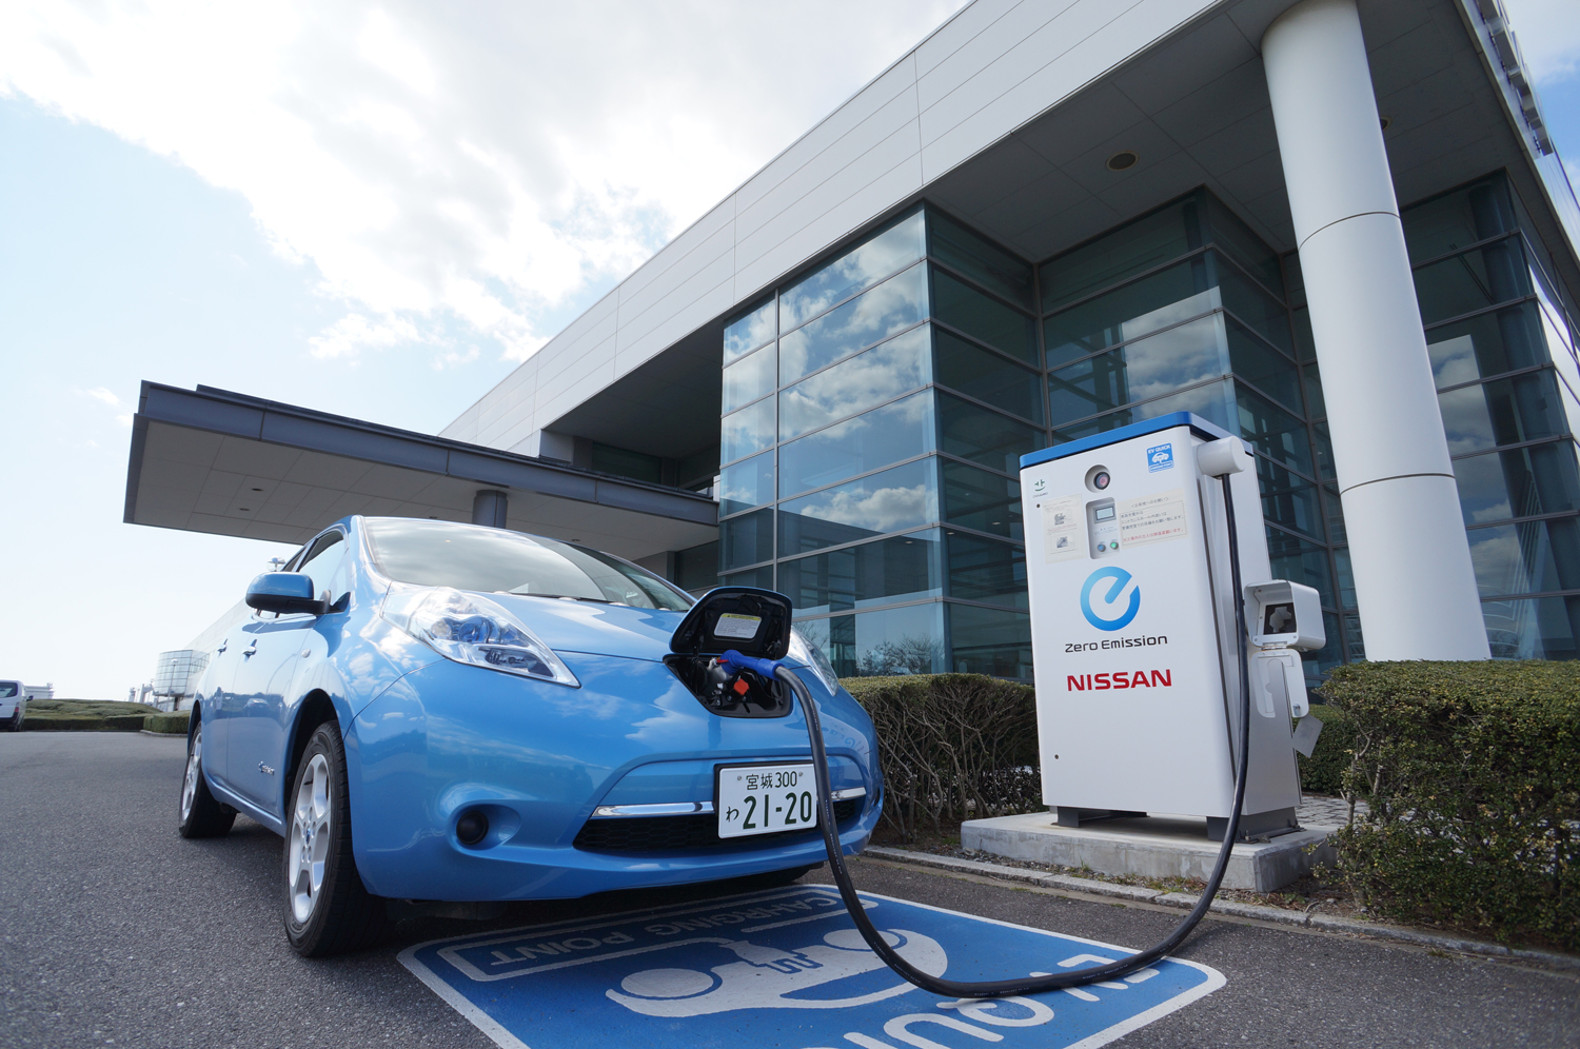 japan has more electric vehicle chargers than gas stations